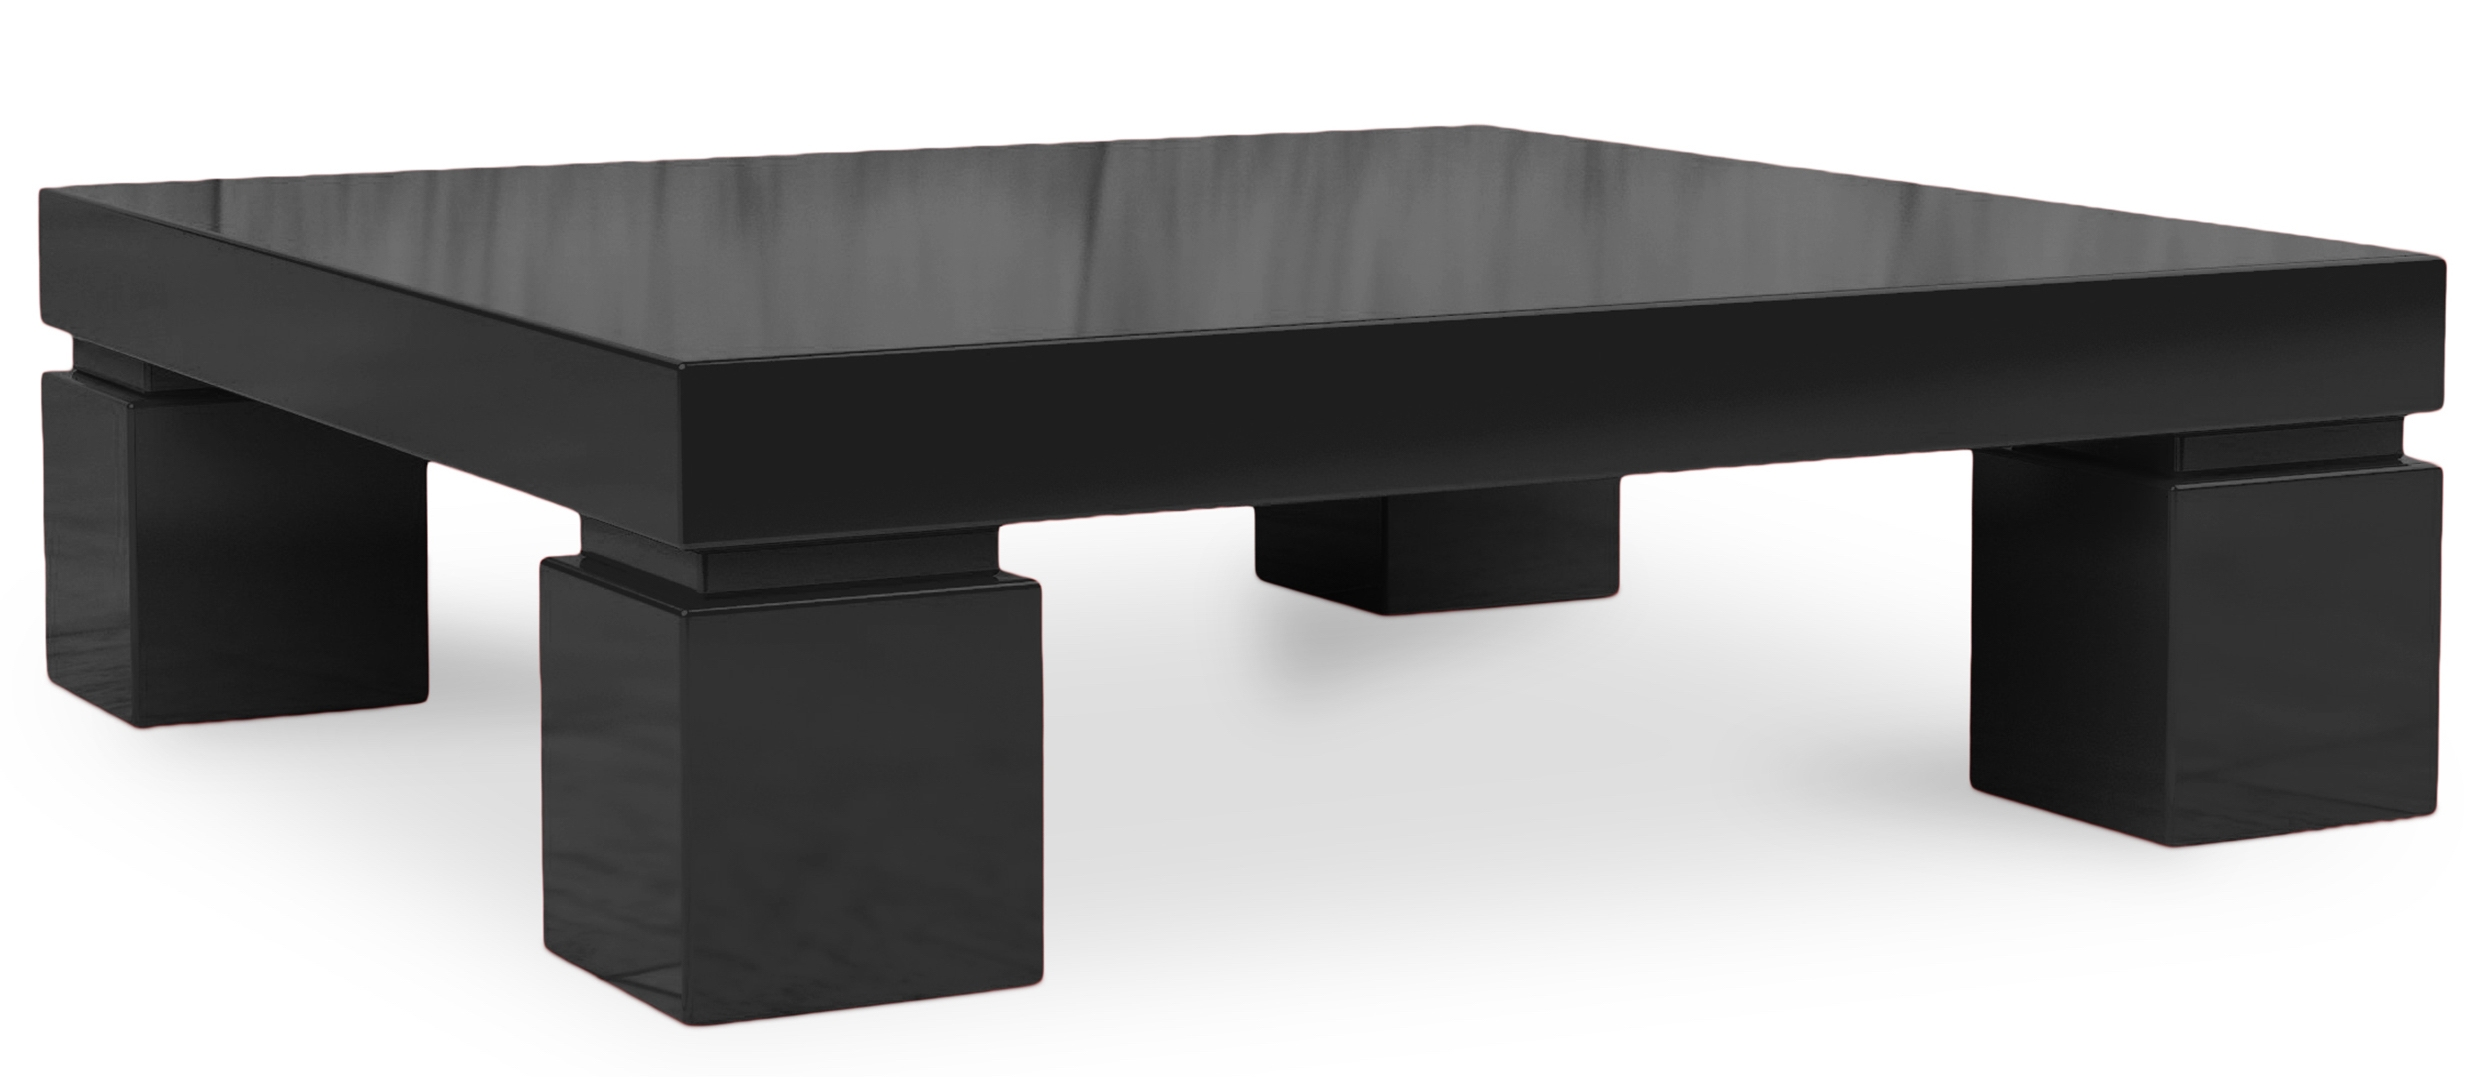 Table Basse Carr E Laqu E Noir Kare